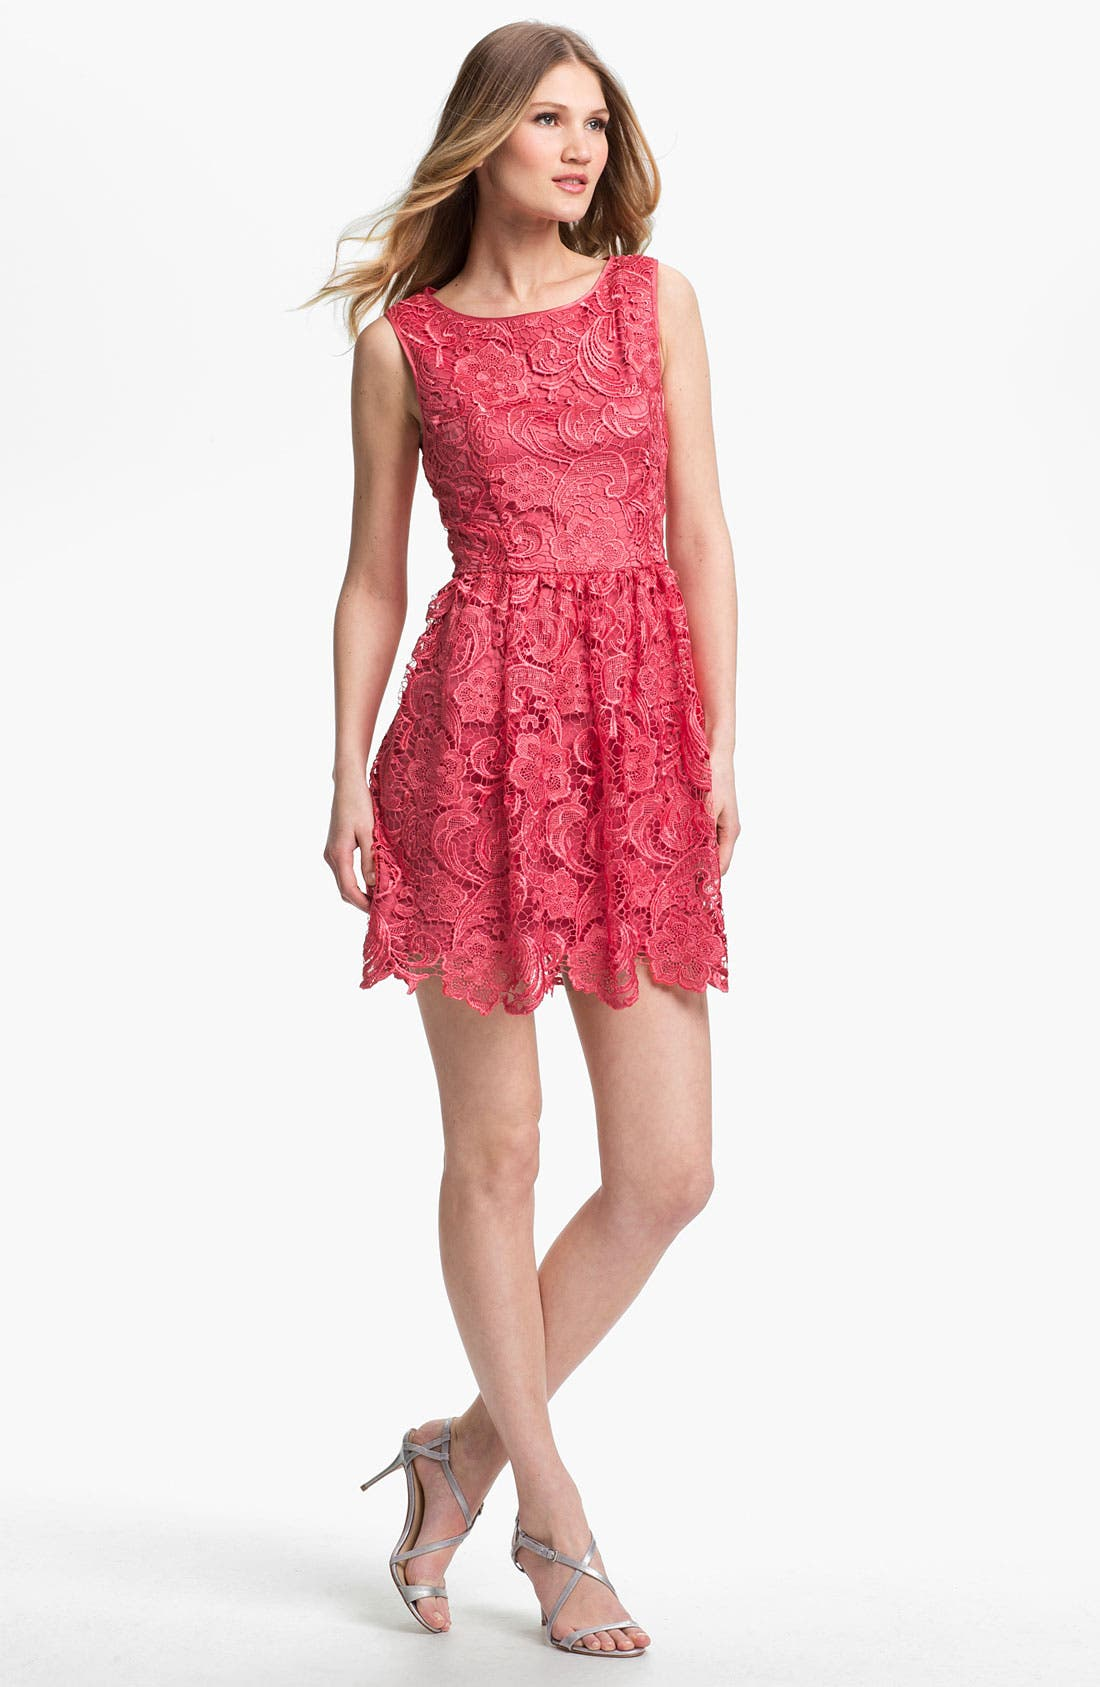 Main Image - Adrianna Papell Lace Fit & Flare Dress